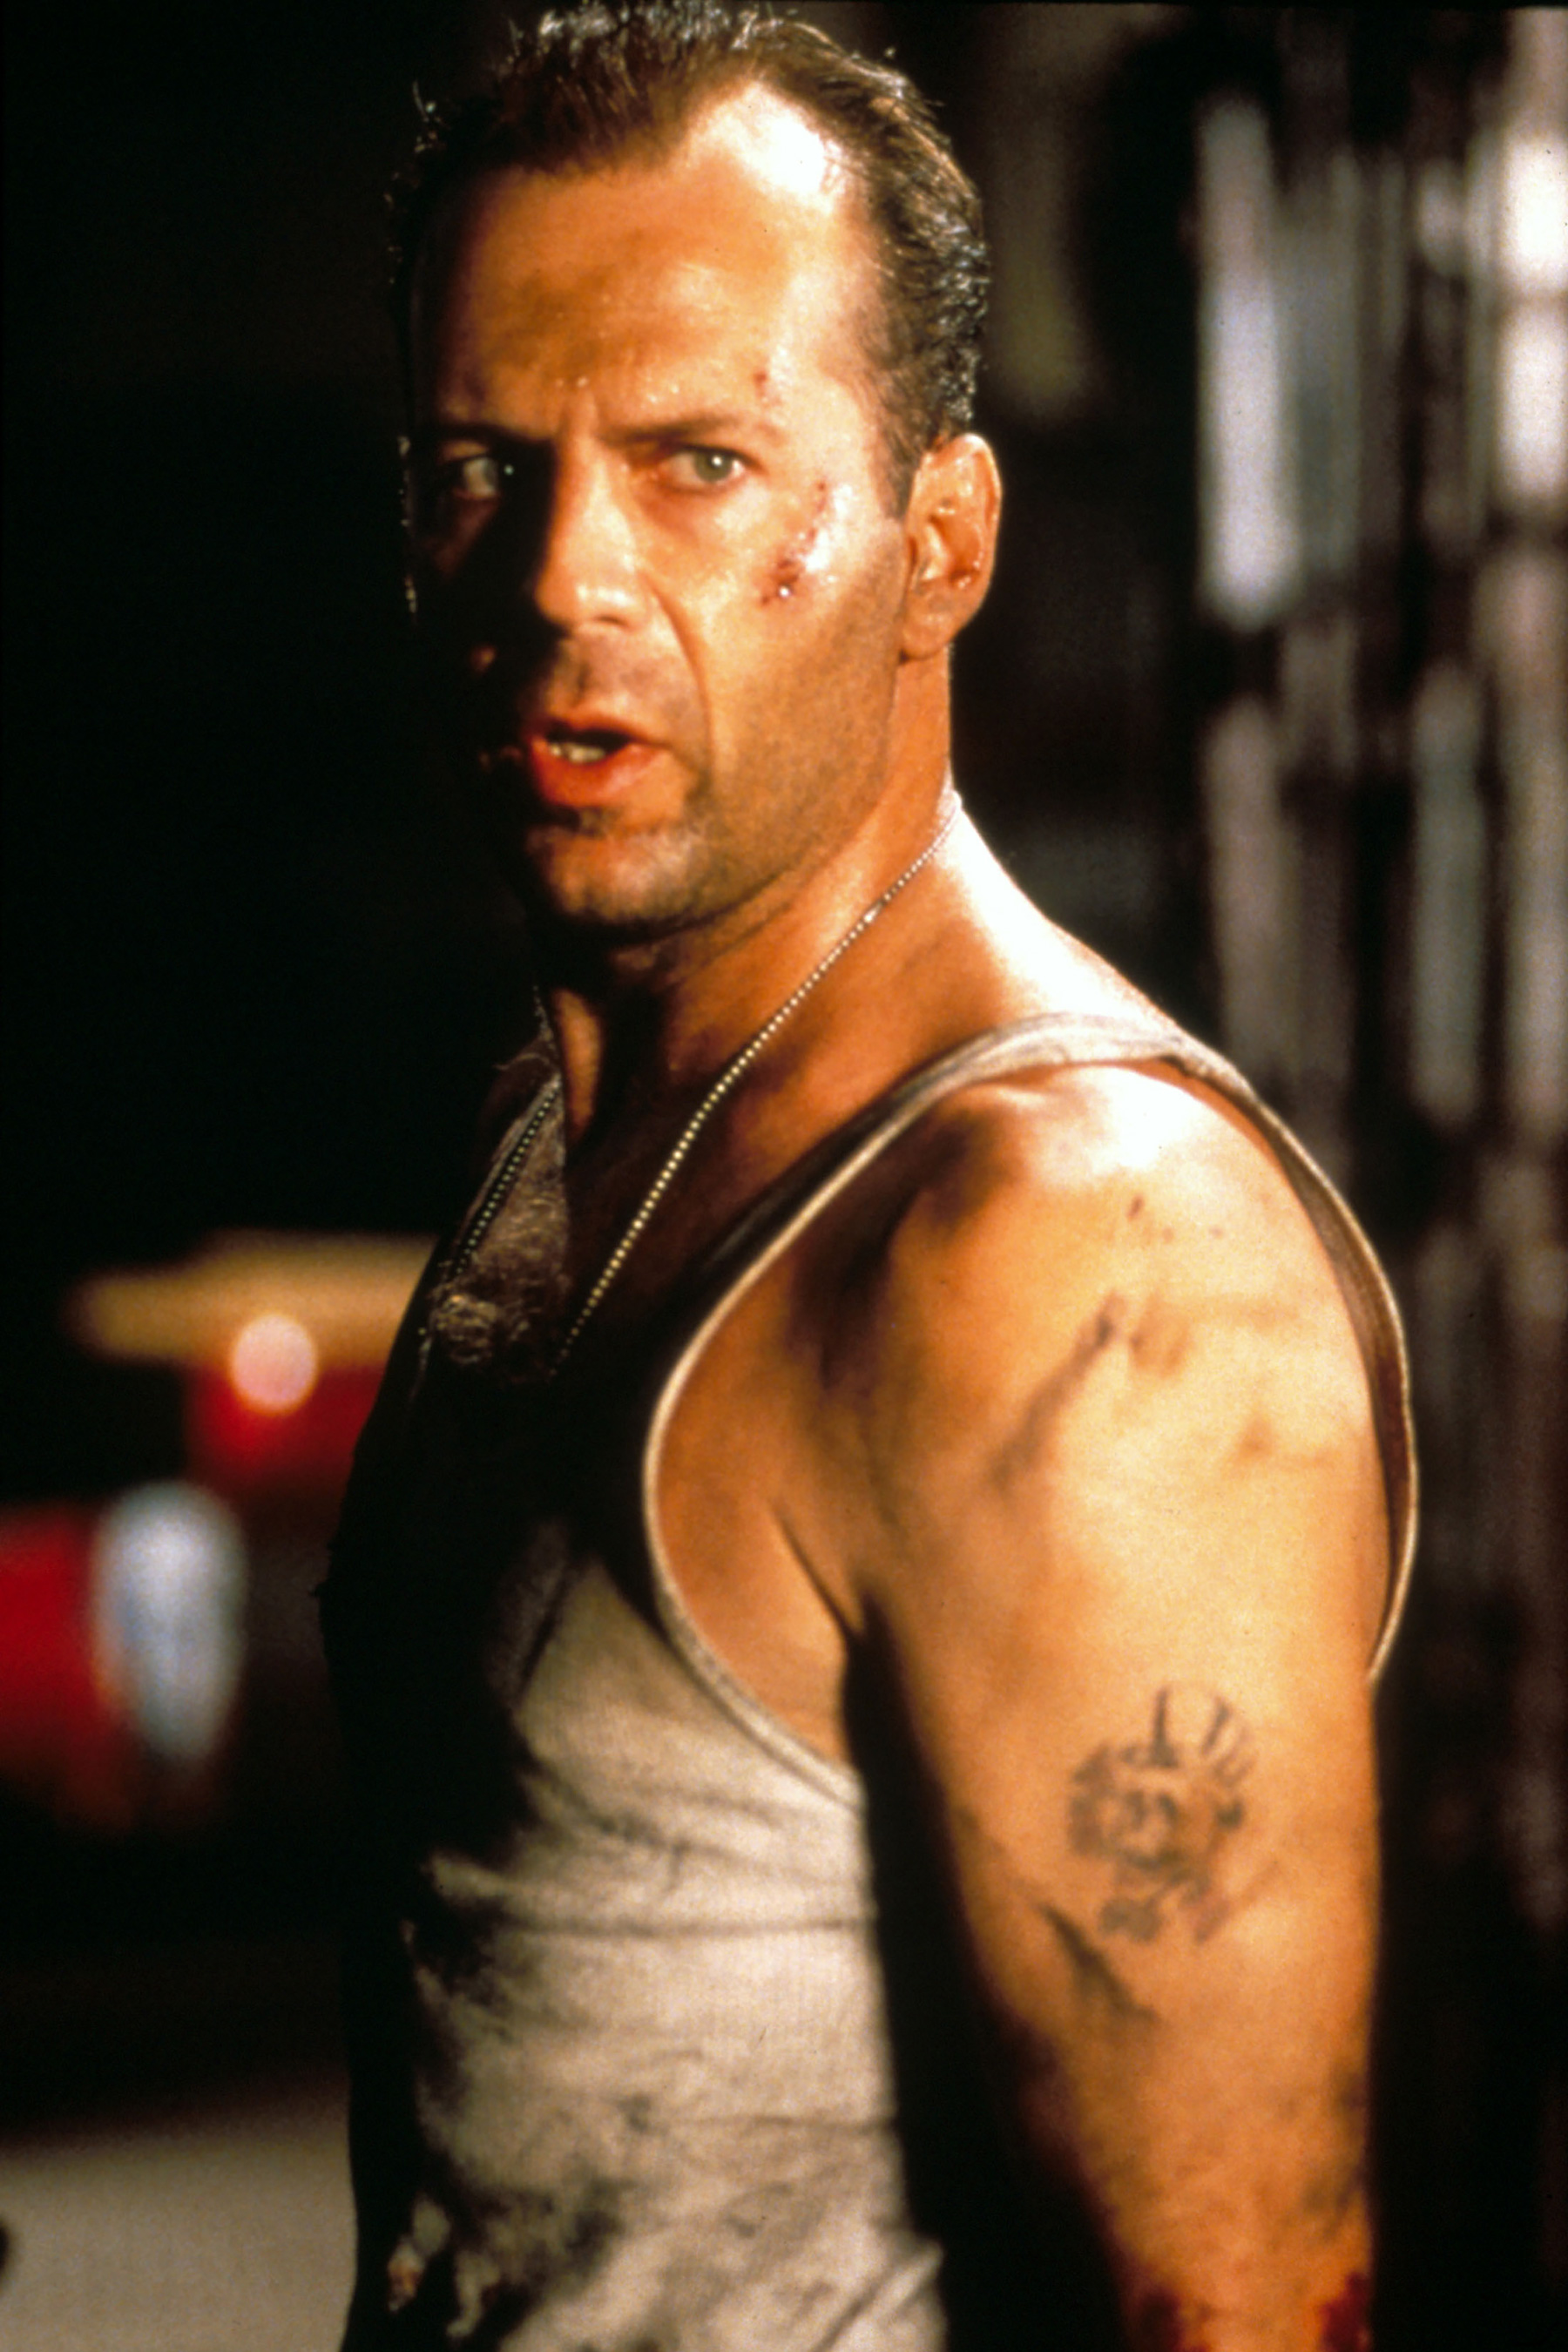 die hard 1 20 Movies That Are Actually Way Better Than The Books They're Based On